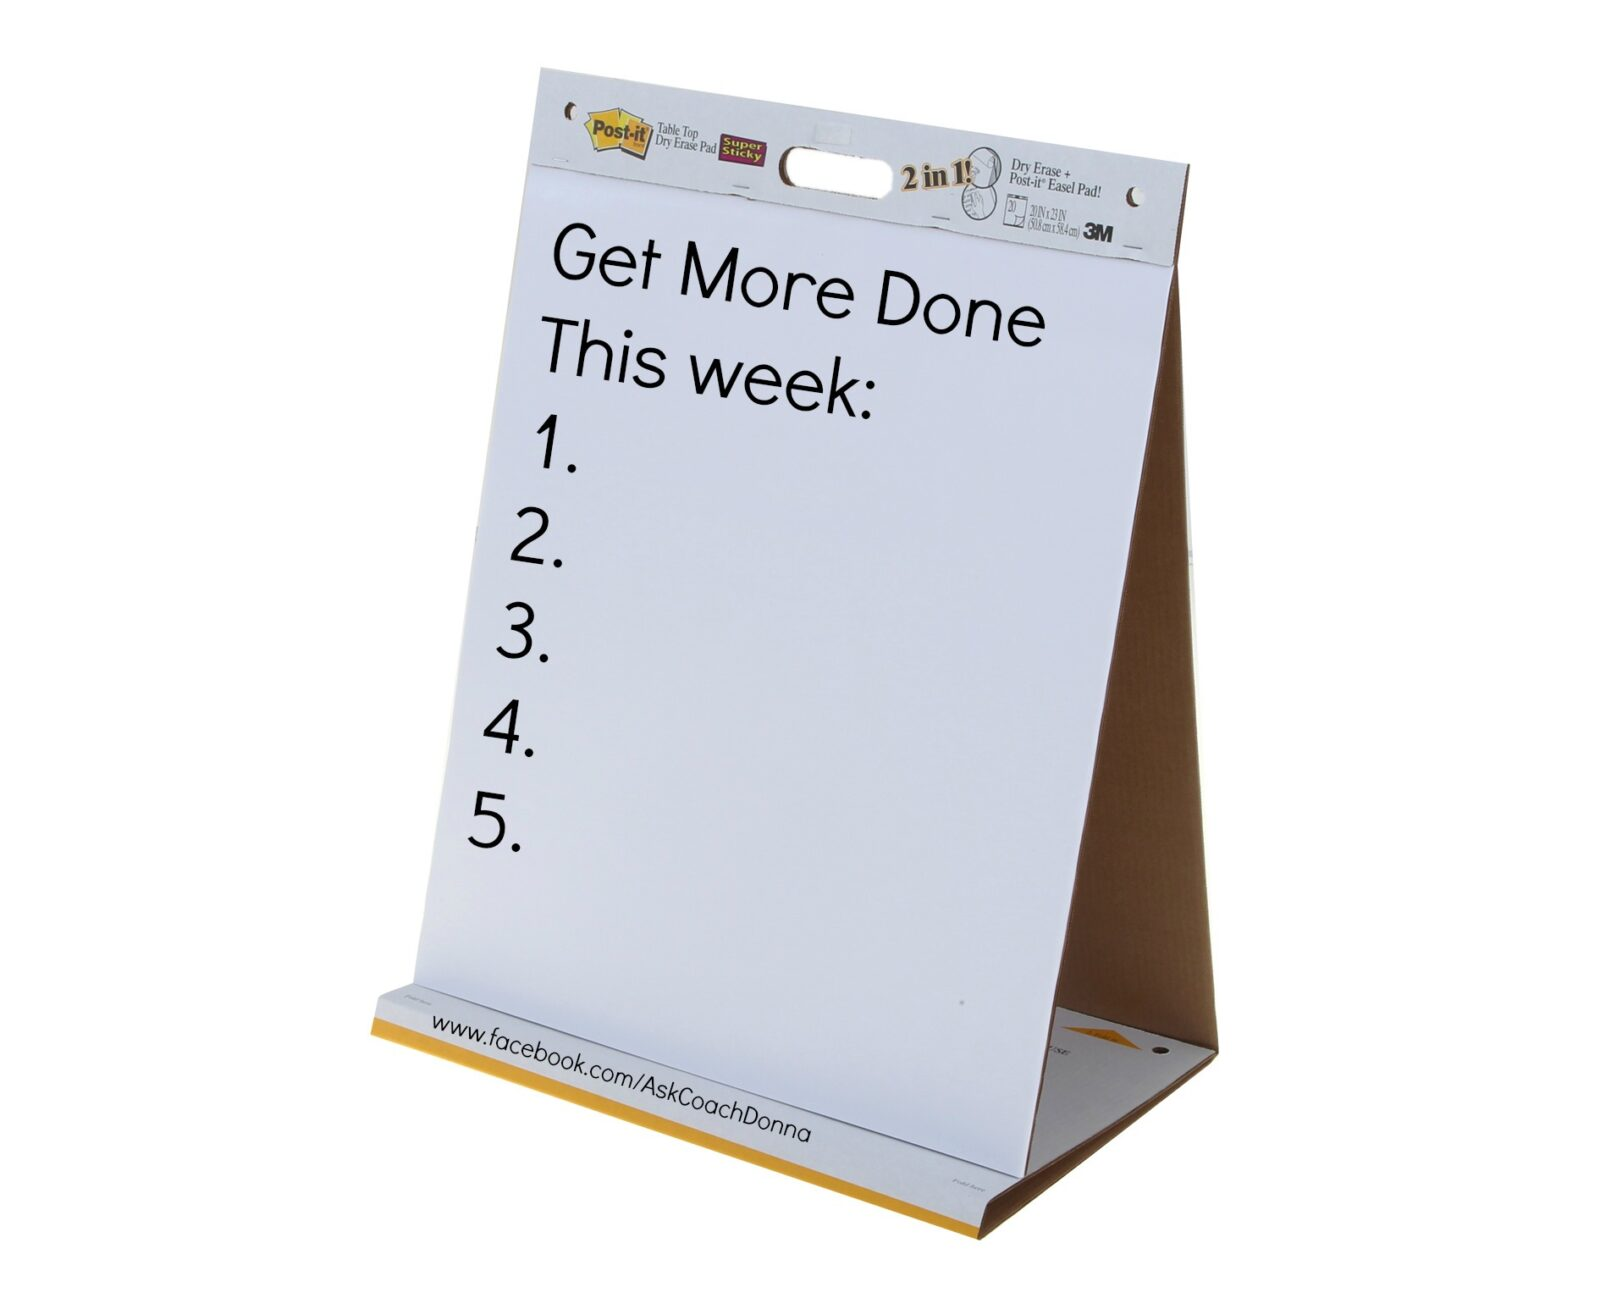 Get more done this week